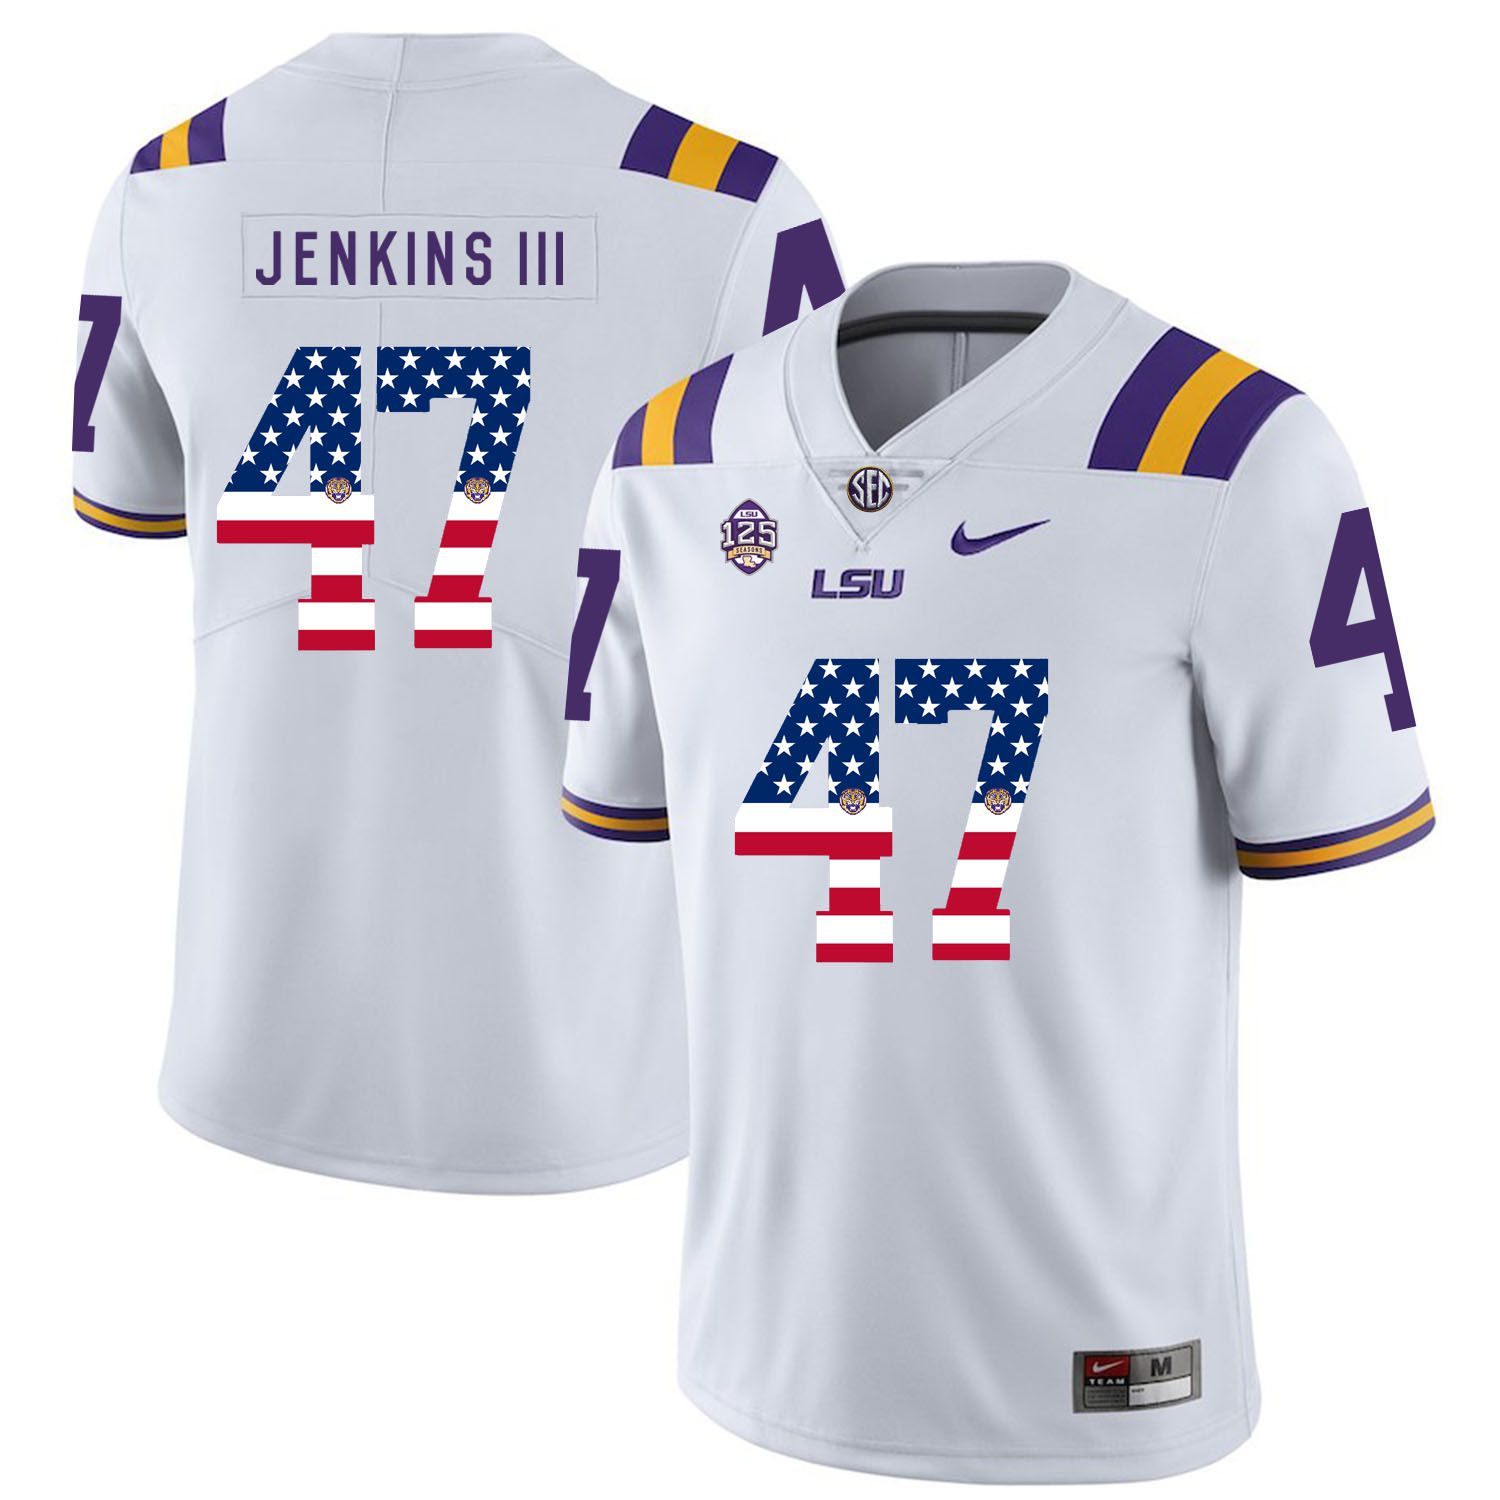 Men LSU Tigers 47 Jenkins iii White Flag Customized NCAA Jerseys